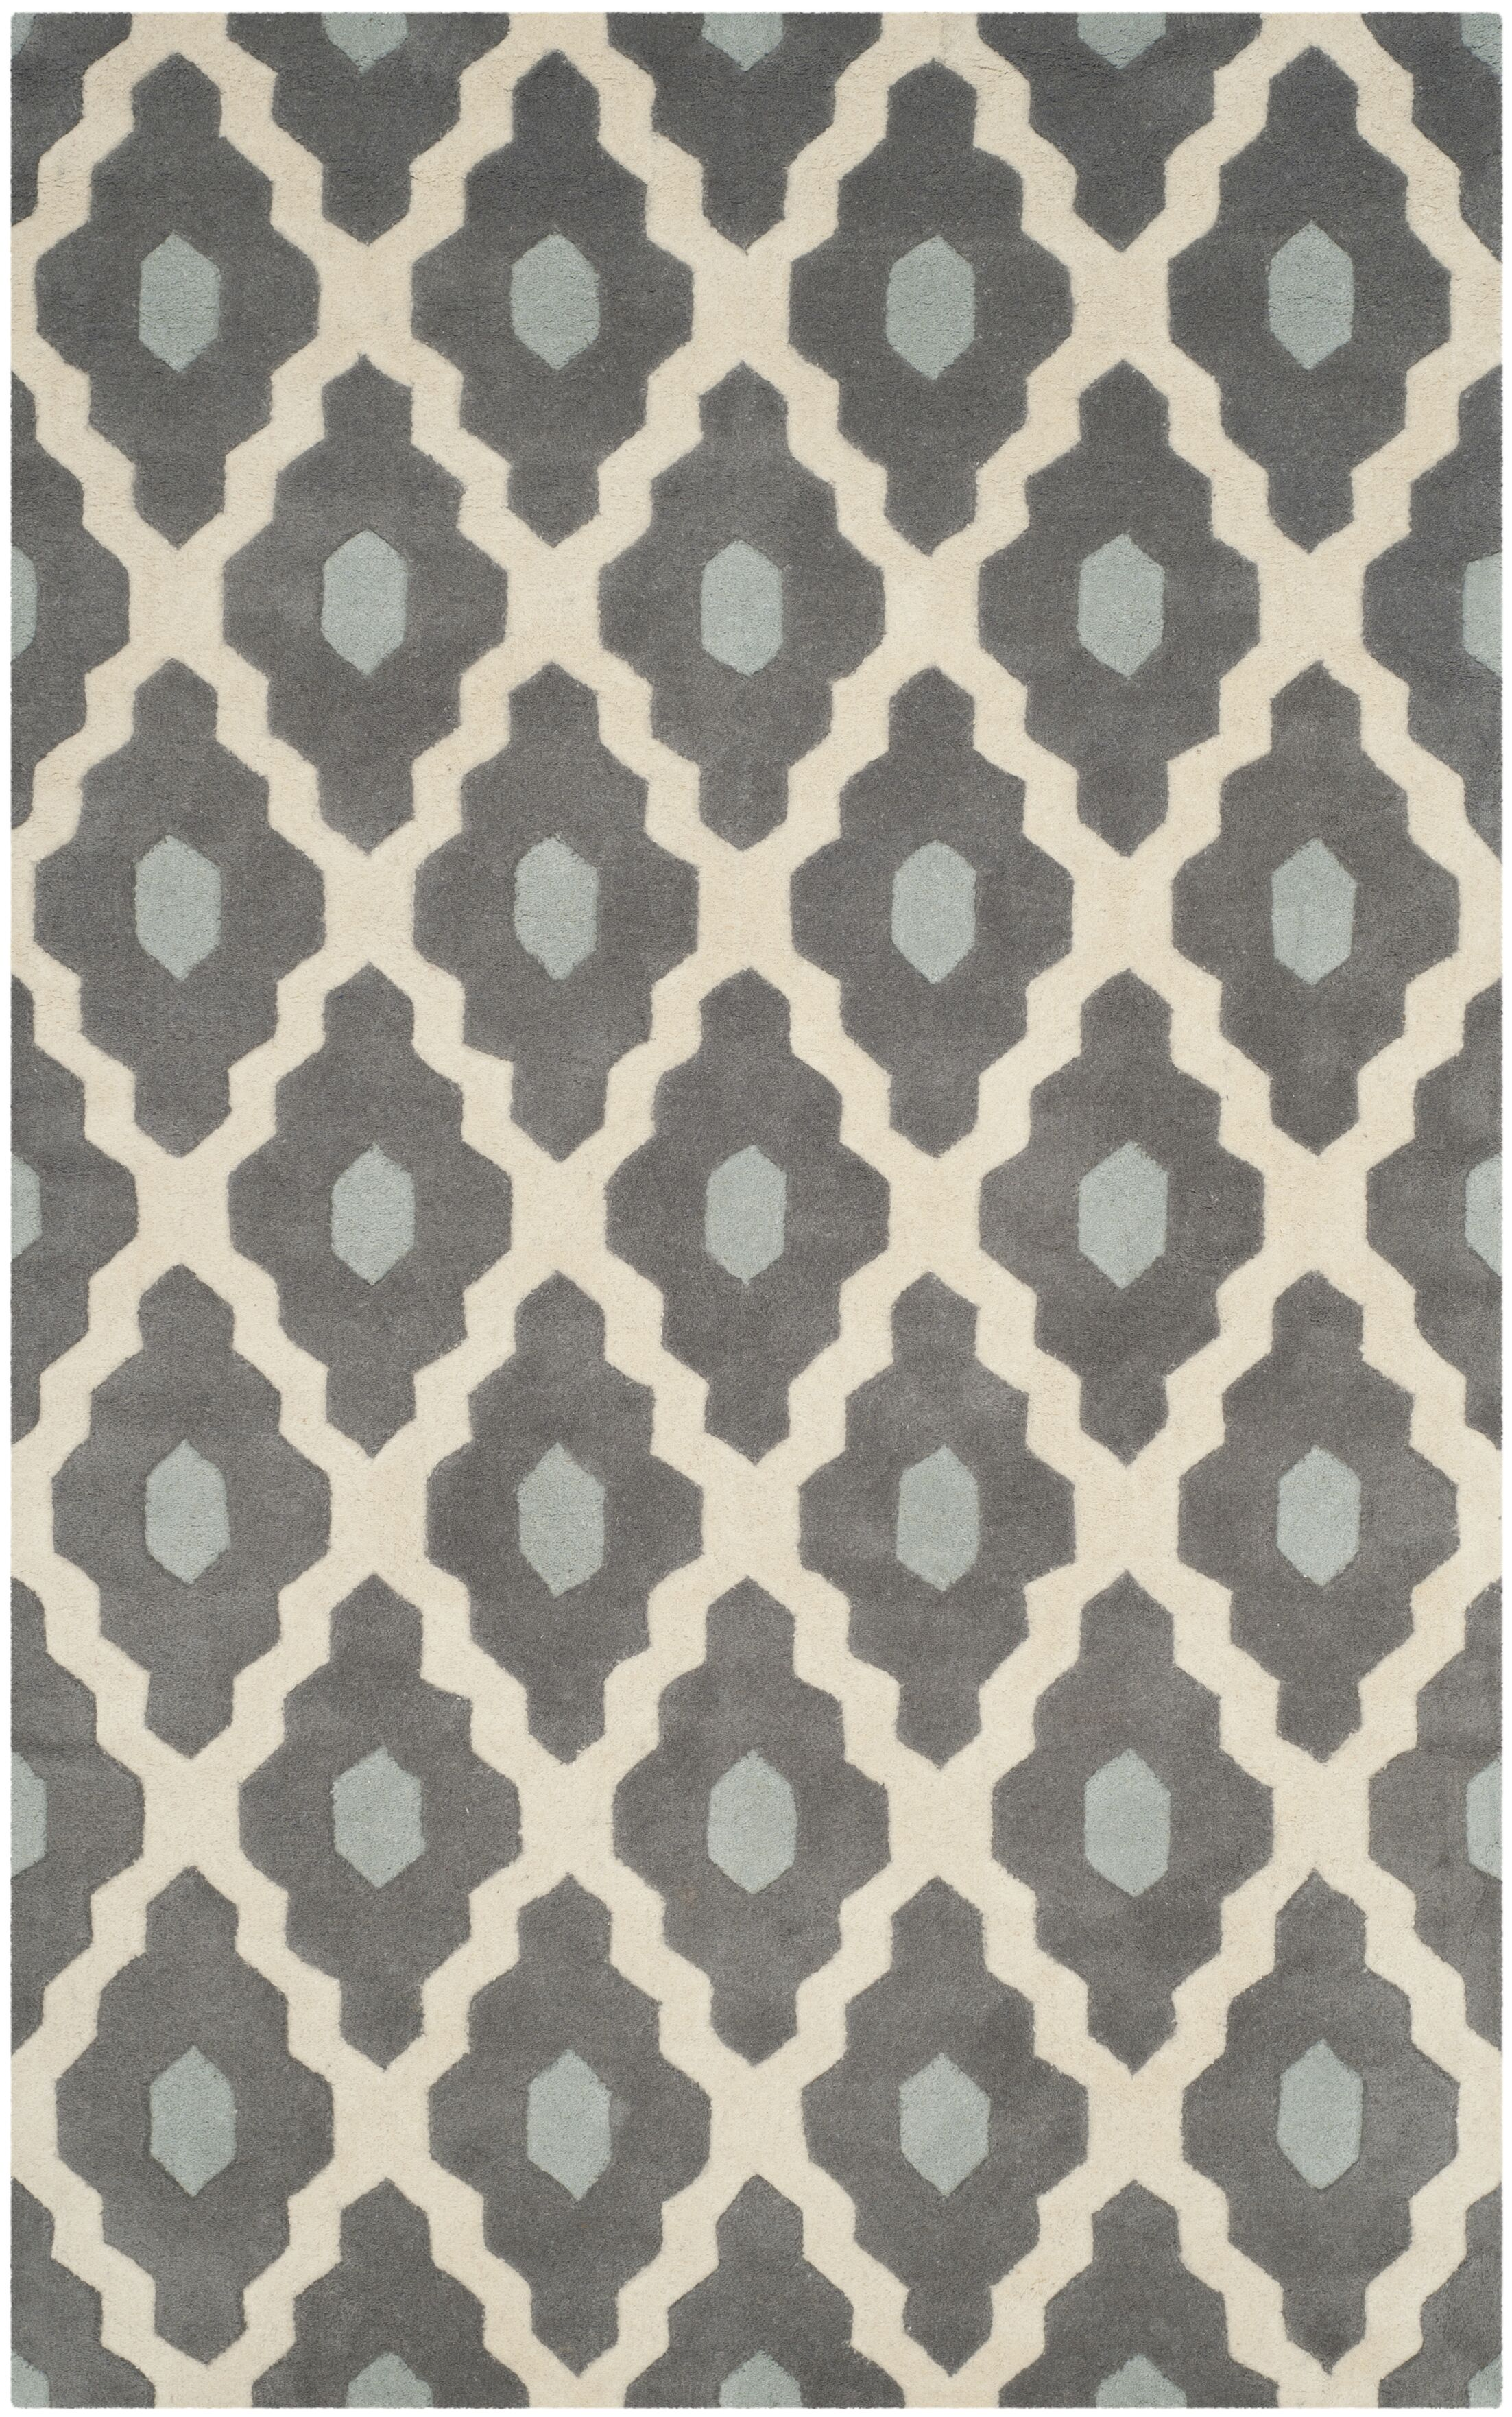 Wilkin Dark Gray/Ivory Moroccan Area Rug Rug Size: Rectangle 5' x 8'